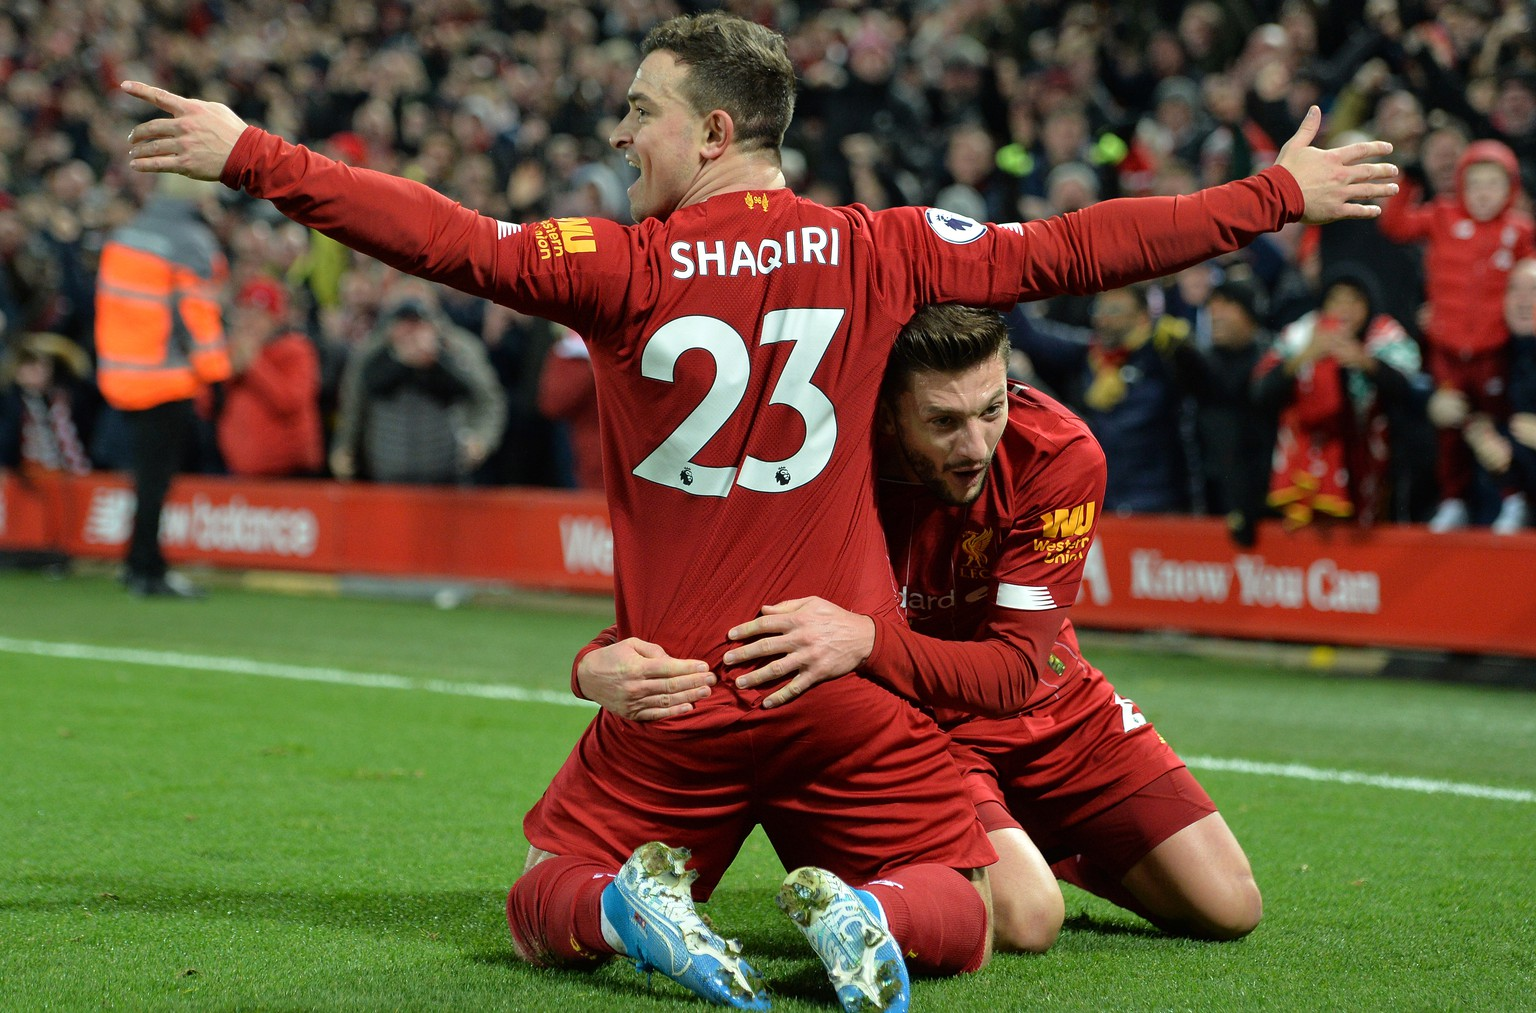 epa08044994 Xherdan Shaqiri (L) of Liverpool celebrates with teammate Adam Lallana after scoring the 2-0 during the English Premier League soccer match between Liverpool FC and Everton in Liverpool, Britain, 04 December 2019.  EPA/Peter Powell EDITORIAL USE ONLY. No use with unauthorized audio, video, data, fixture lists, club/league logos or 'live' services. Online in-match use limited to 120 images, no video emulation. No use in betting, games or single club/league/player publications